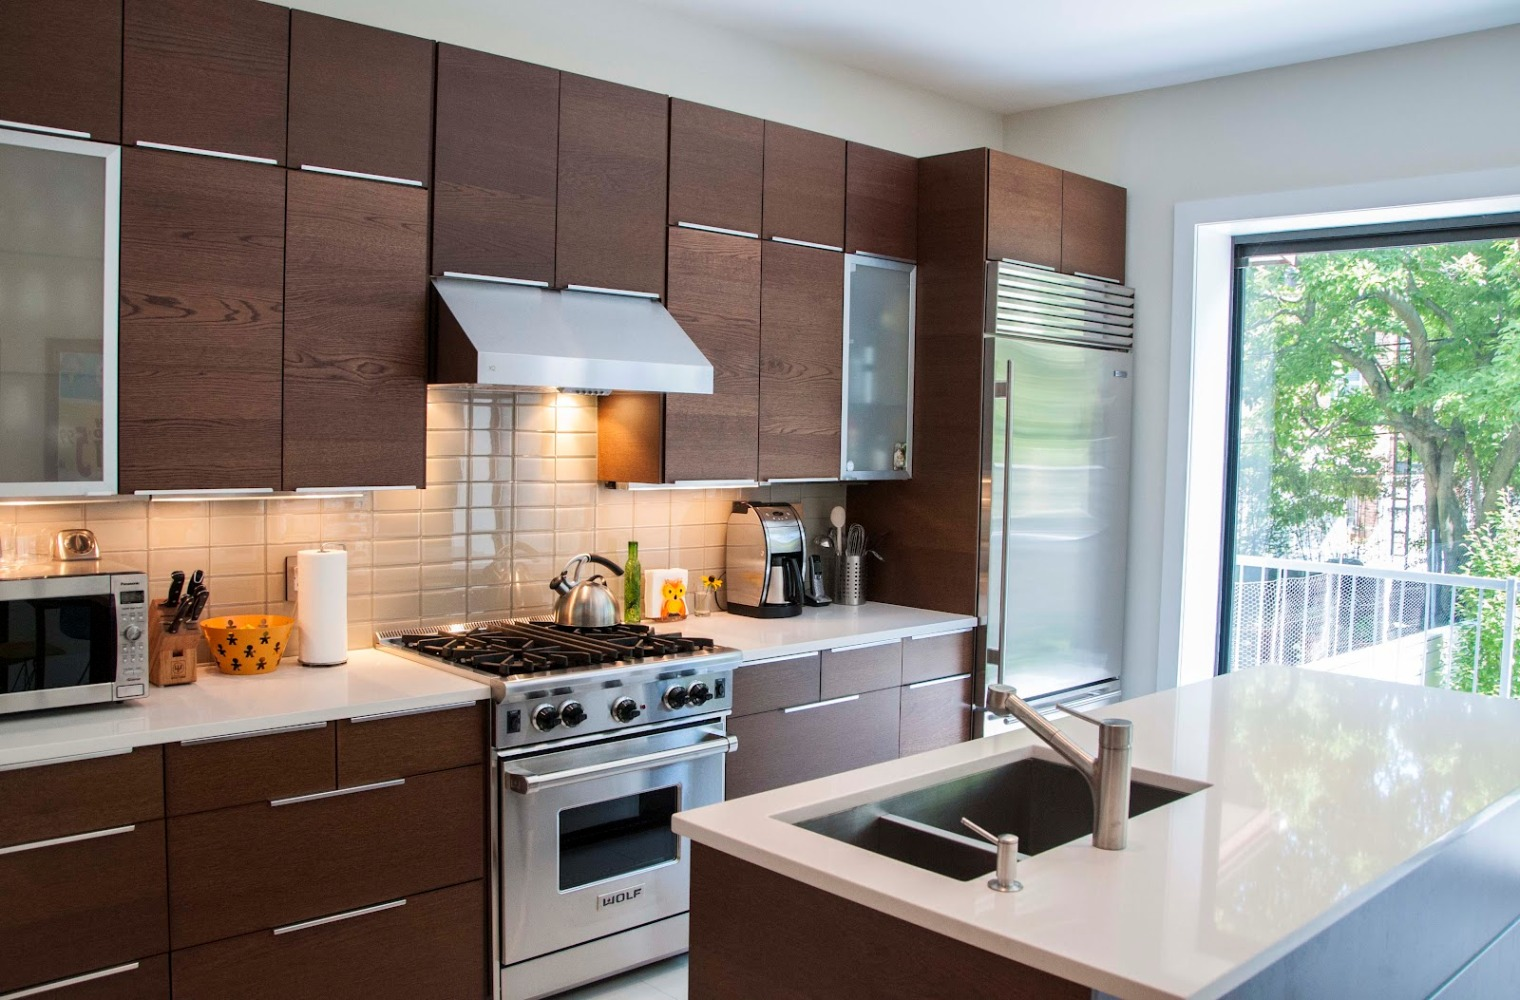 ikea kitchen cabinets ideas photo - 10